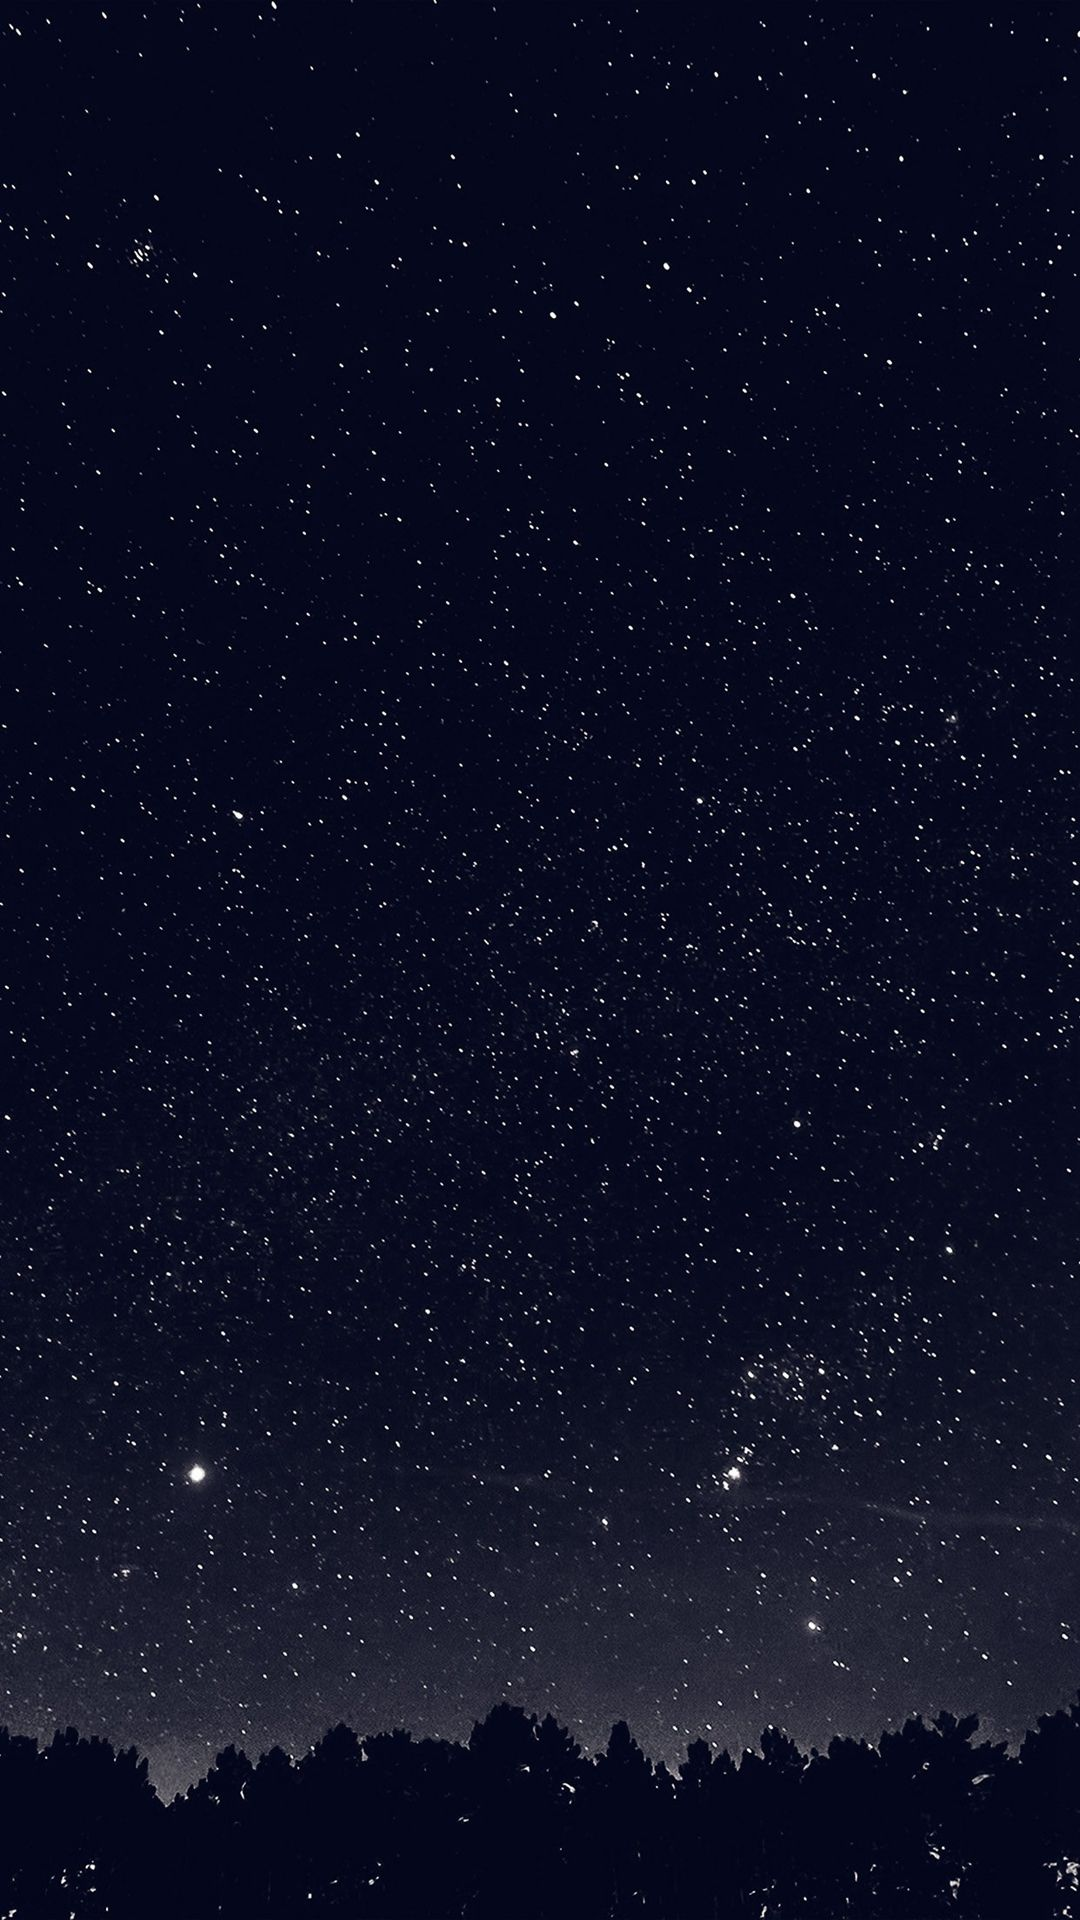 Space Sky Night Dark Nature Bw iPhone 6 wallpaper Fotos de 1080x1920